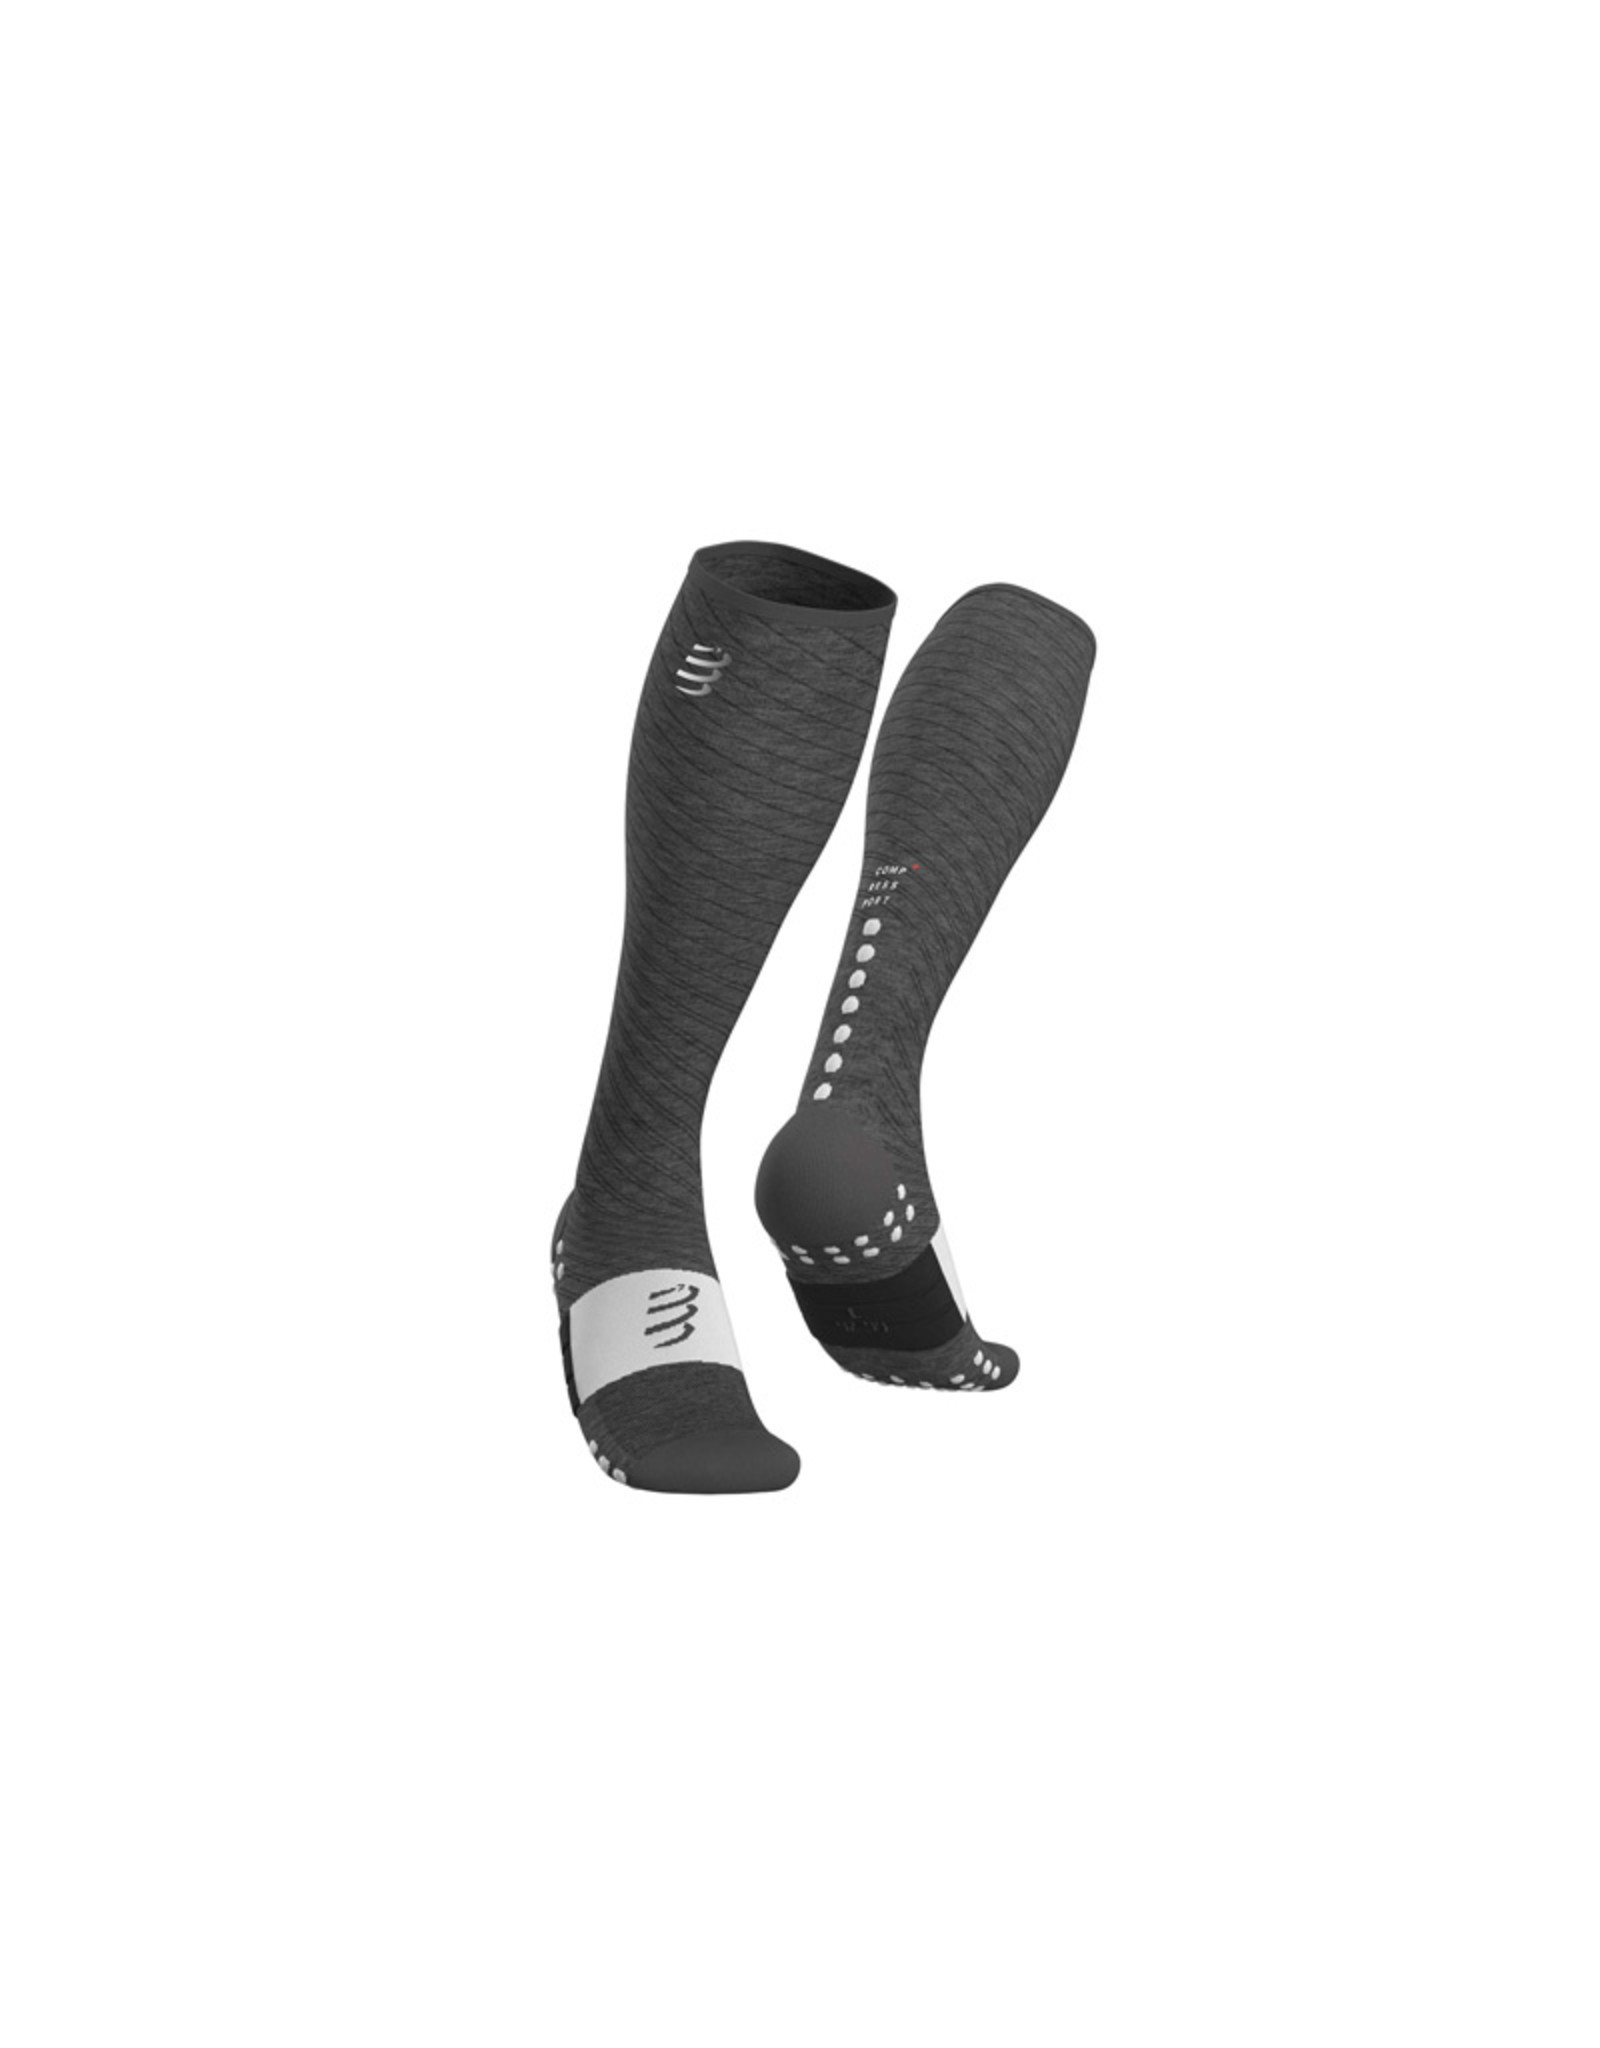 Compressport Full Socks Recovery Chaussettes De Compression - Gris